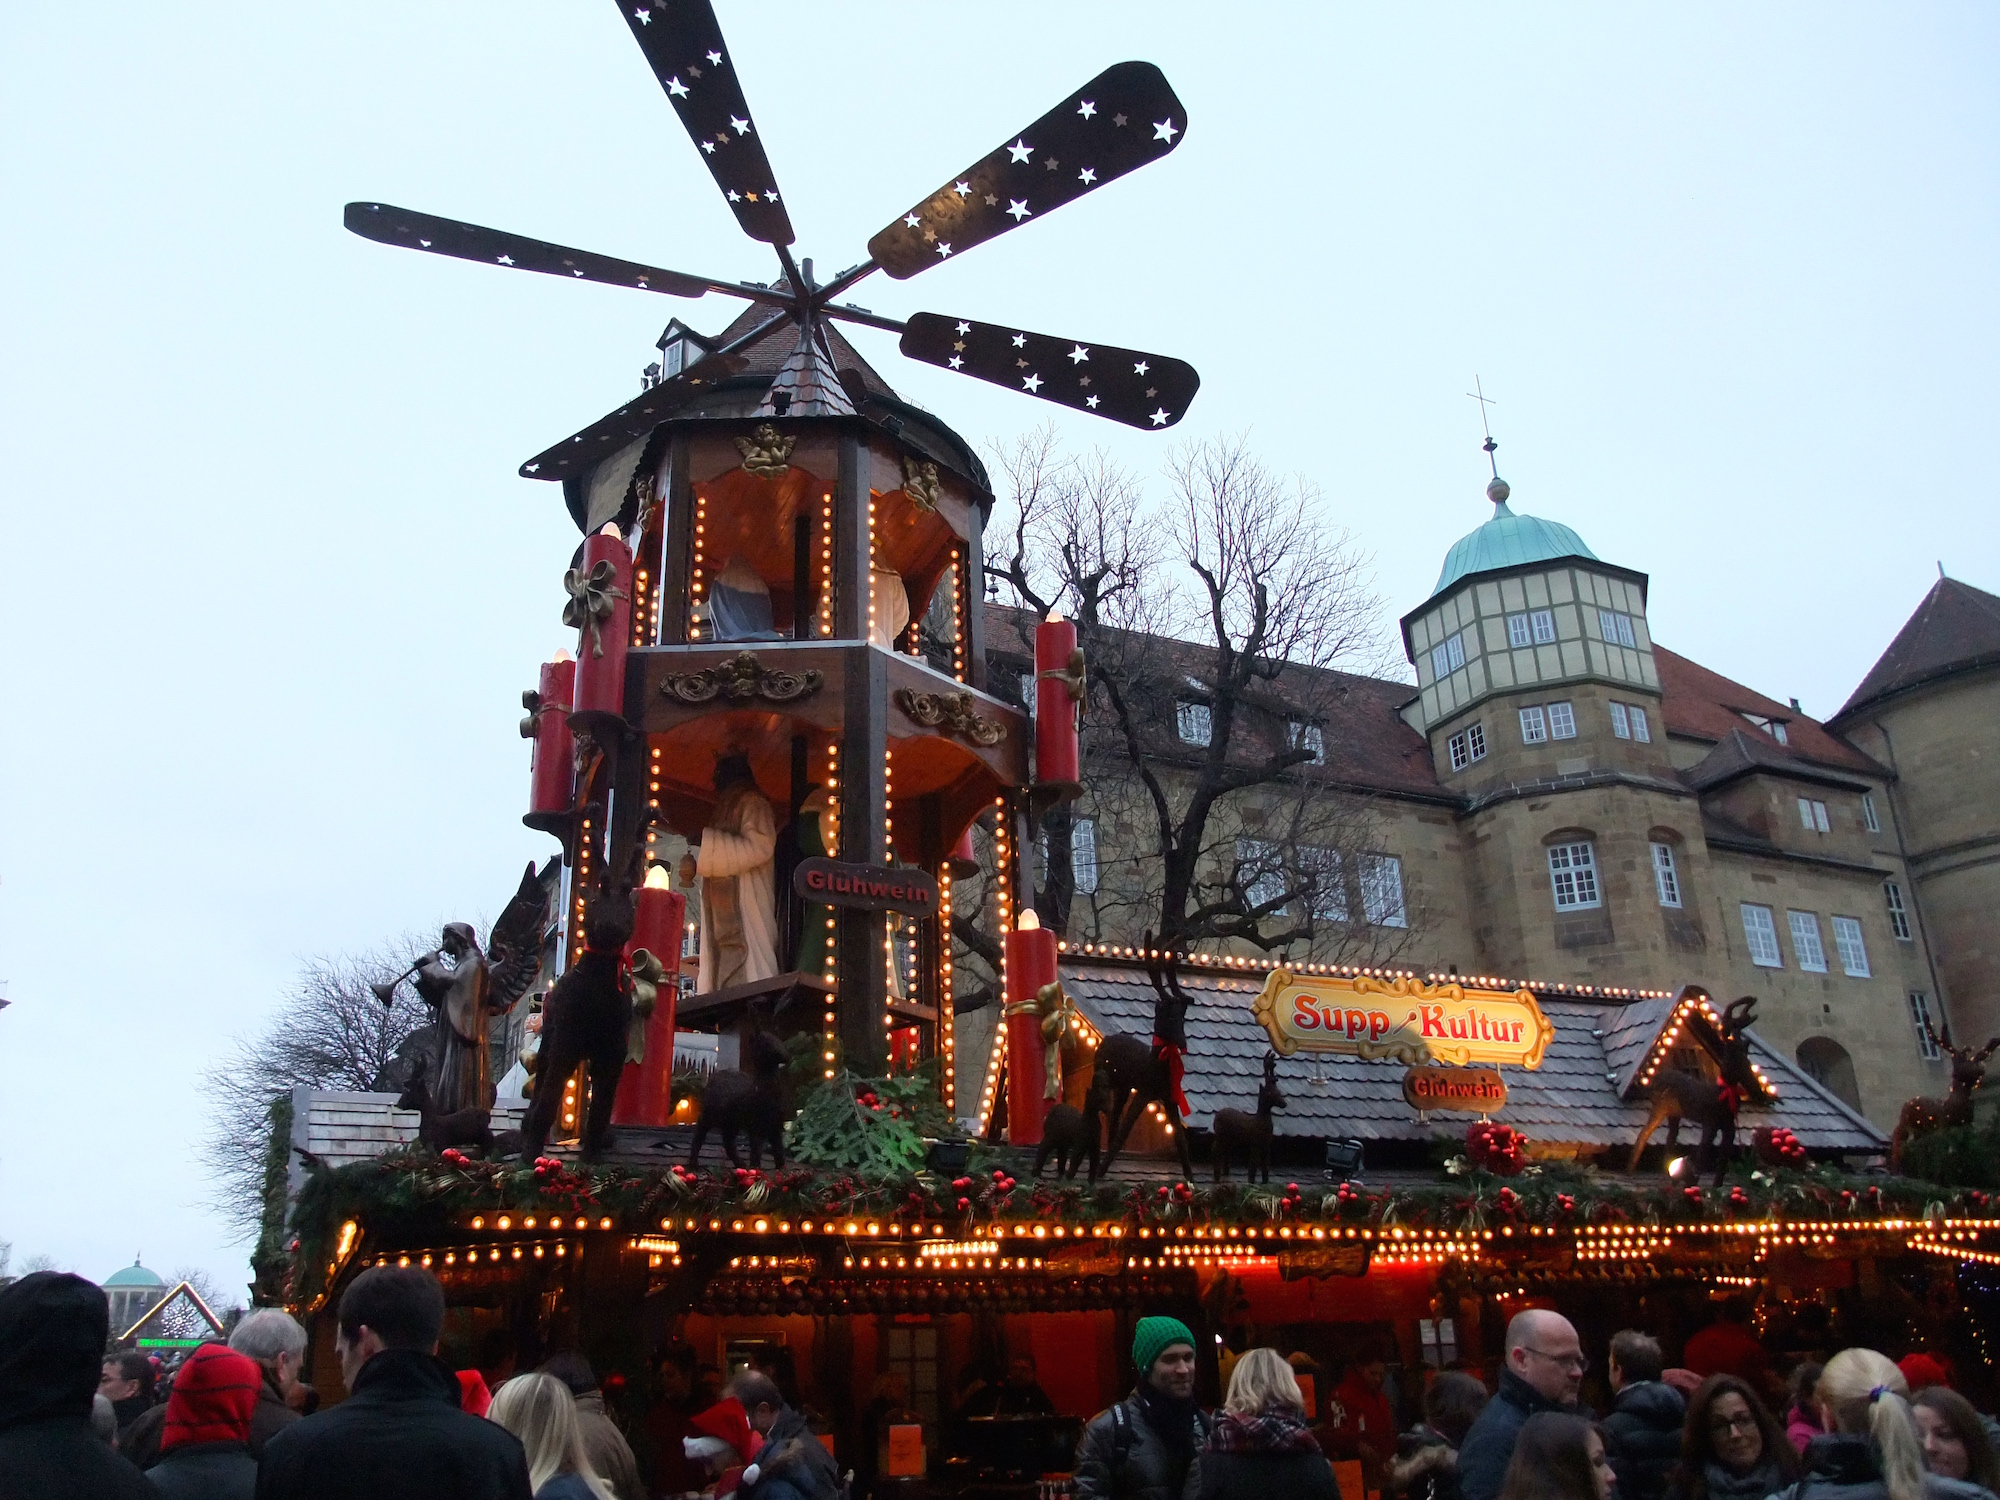 A Christmas pyramid on top of a stall next to the old castle